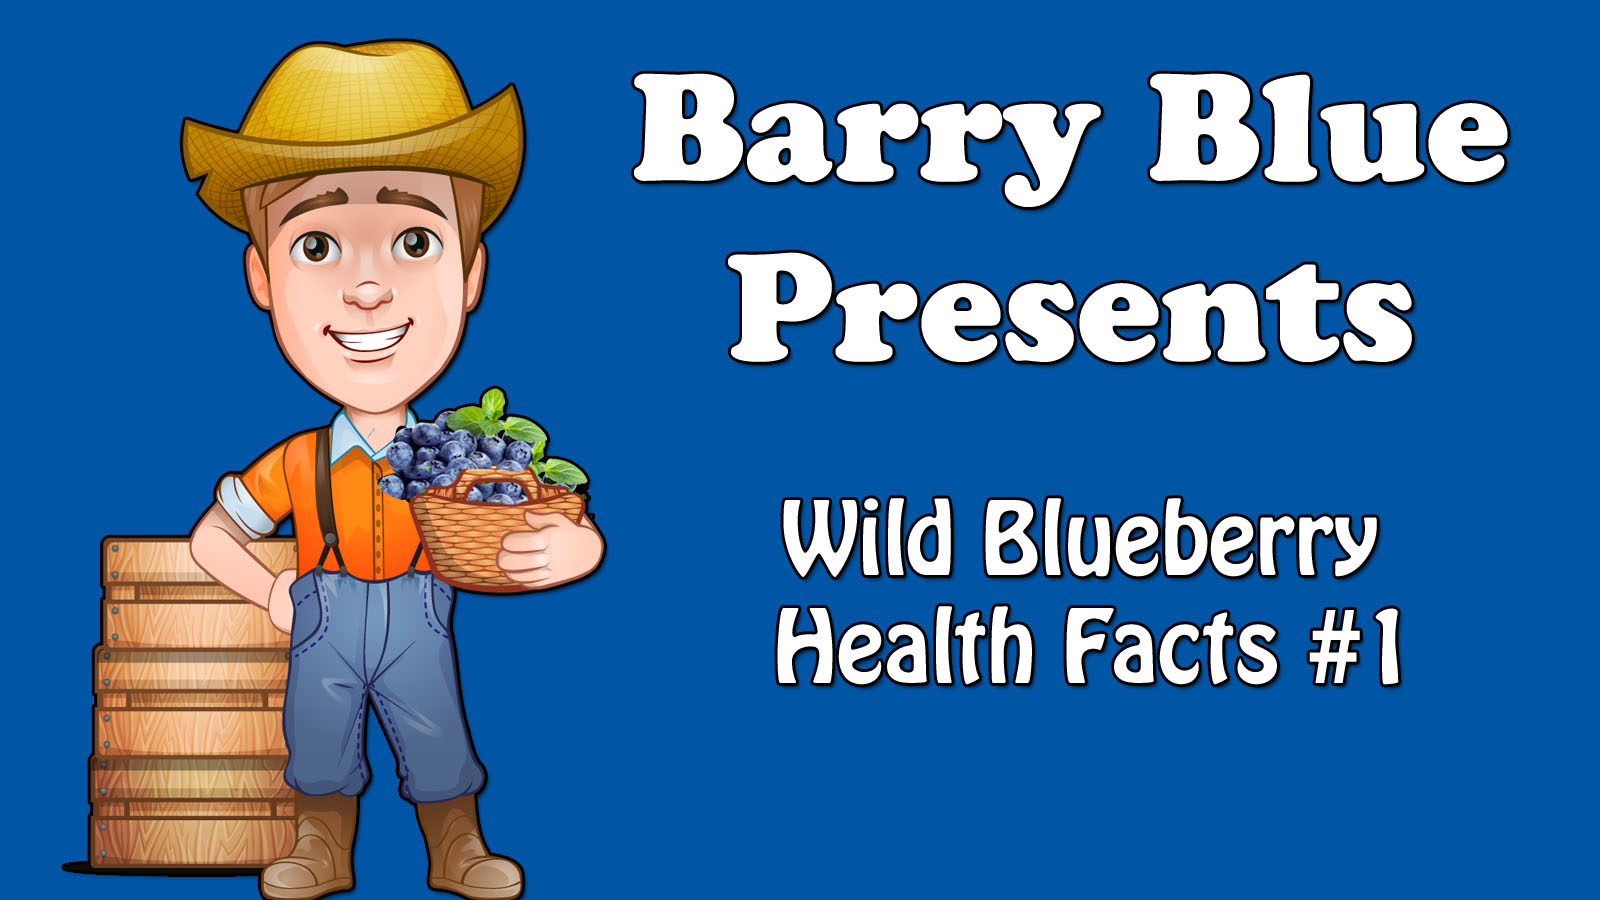 Wild Blueberry Health Fact #1